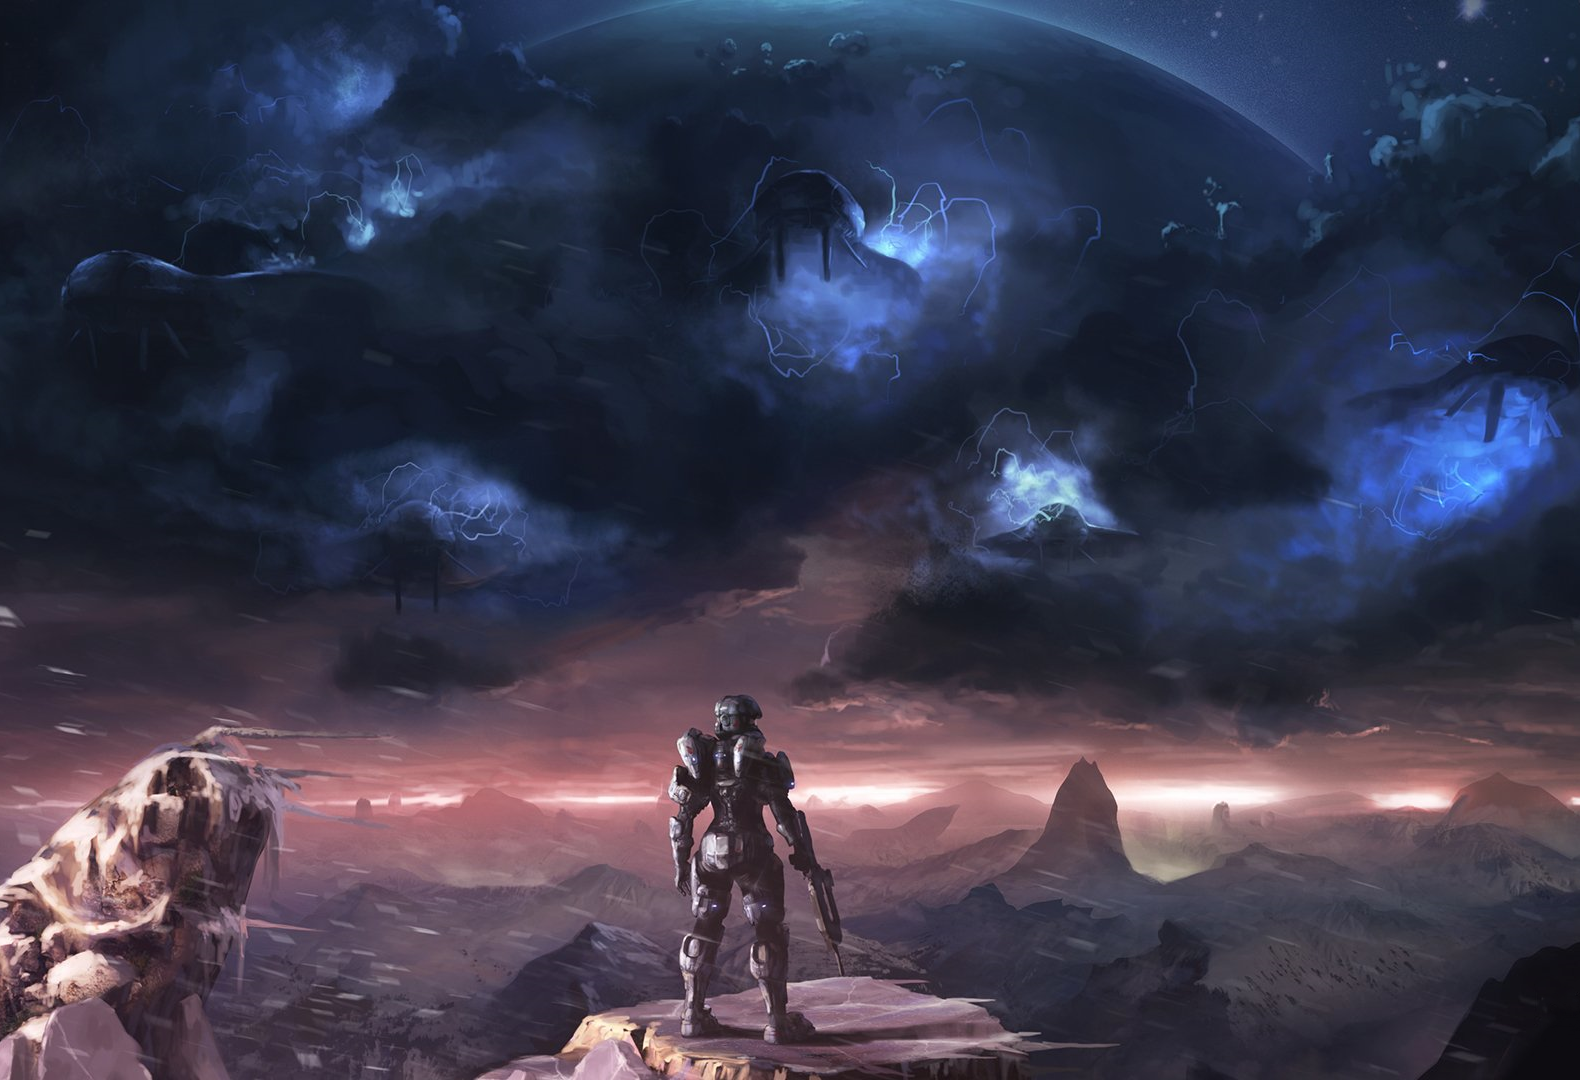 Halo: Light of the Abyss